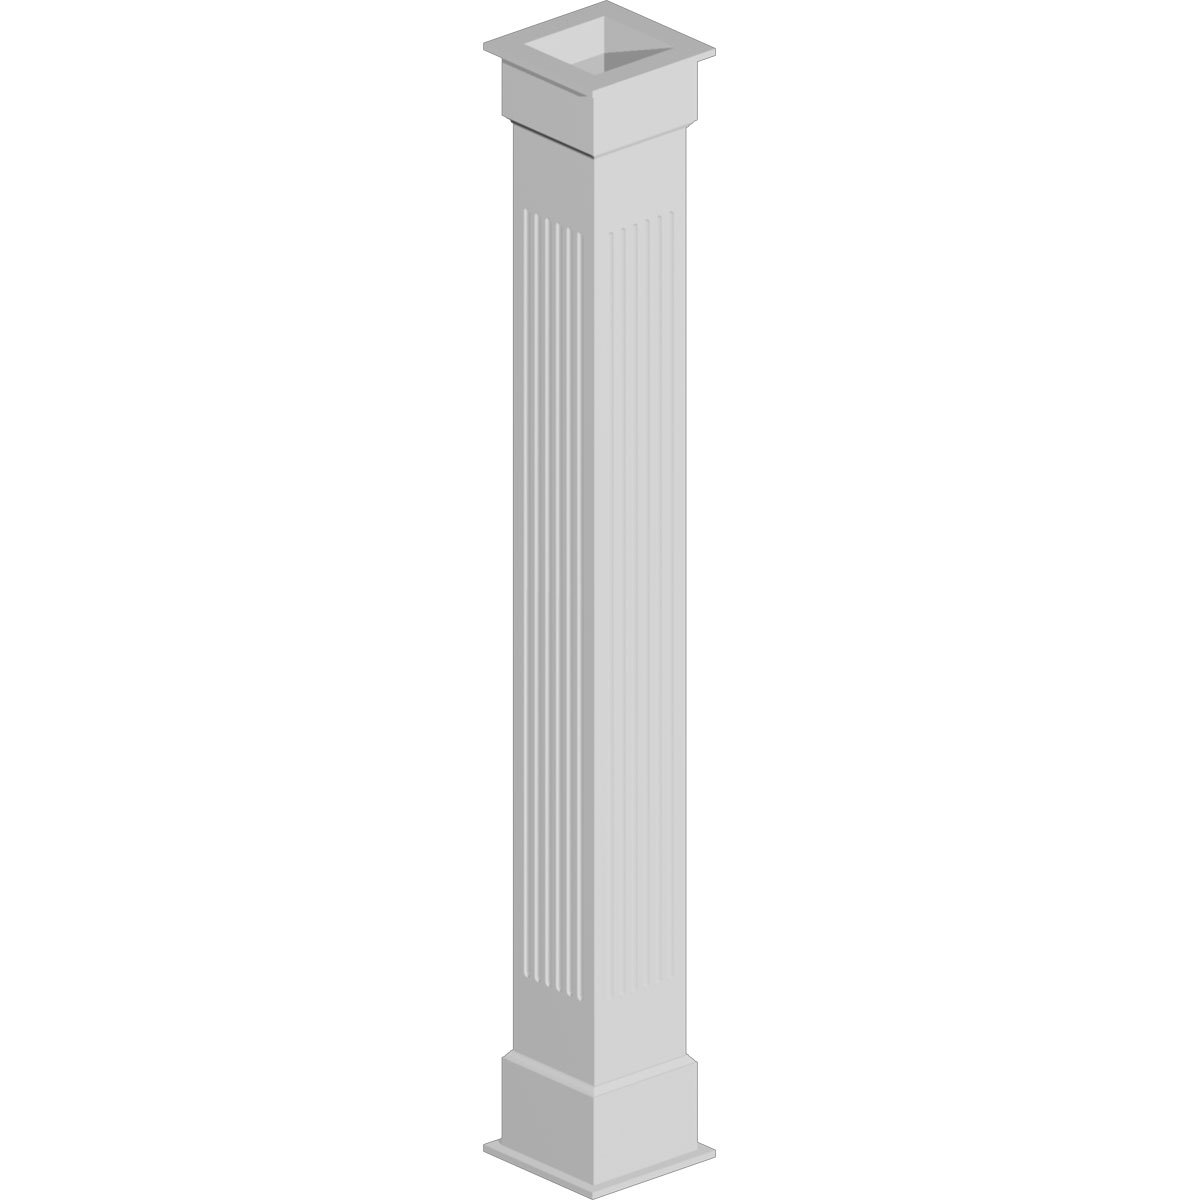 COLUMN WRAP KIT 8X108 F 1BX, NON TAPERED FLUTED